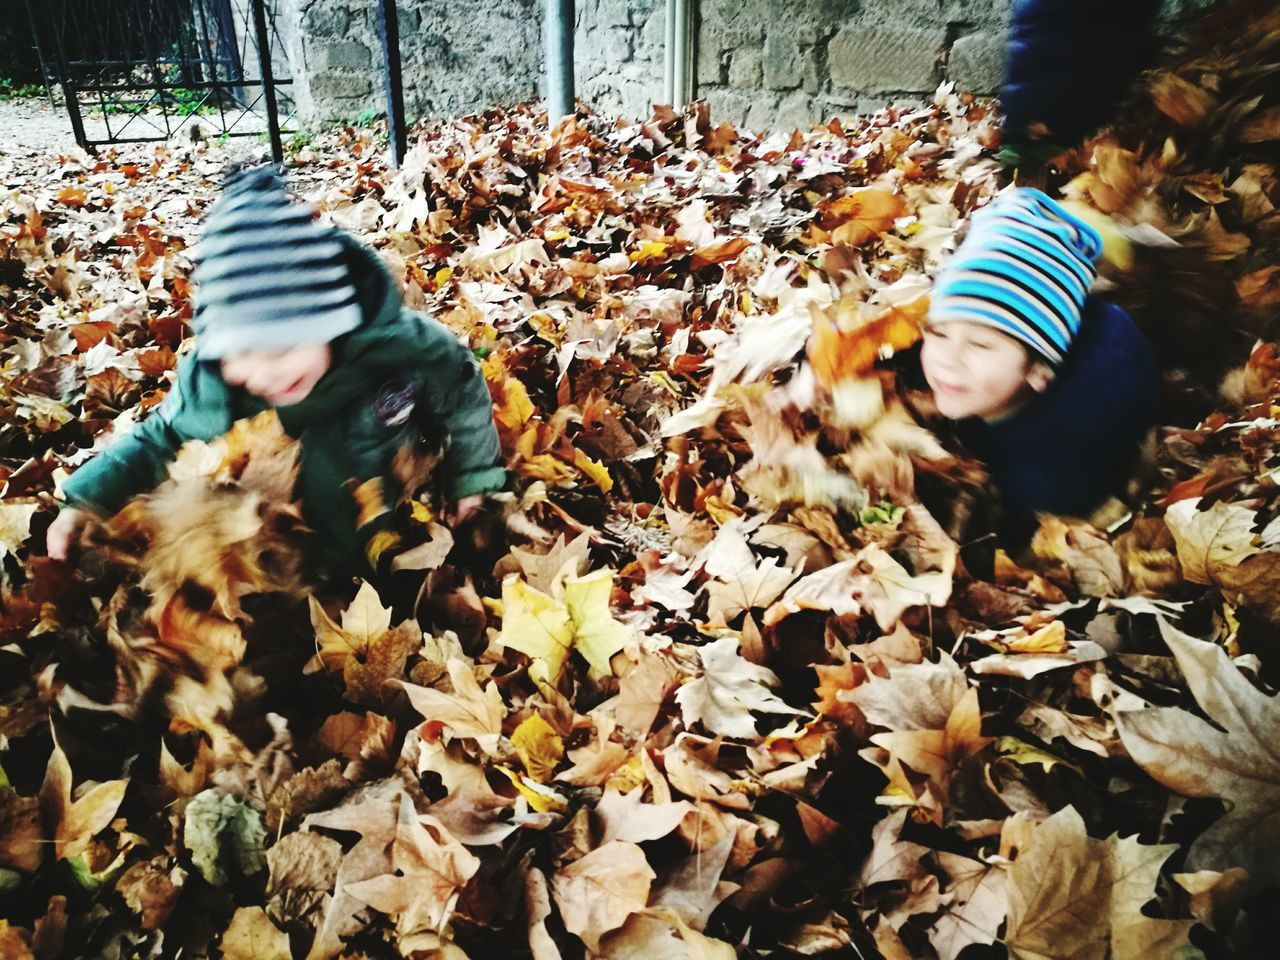 1,2,3 jump! Real People Autumn Day Outdoors Leaves🌿 Fun Kids Being Kids Kids At Play Kids Are Awesome Kids Having Fun Happy Fall Beauty Brown Leaves Yellow Leaves Warm Cloths Cold Day Leaf Nature Animal Themes Togetherness Motion Fragility Beauty In Nature